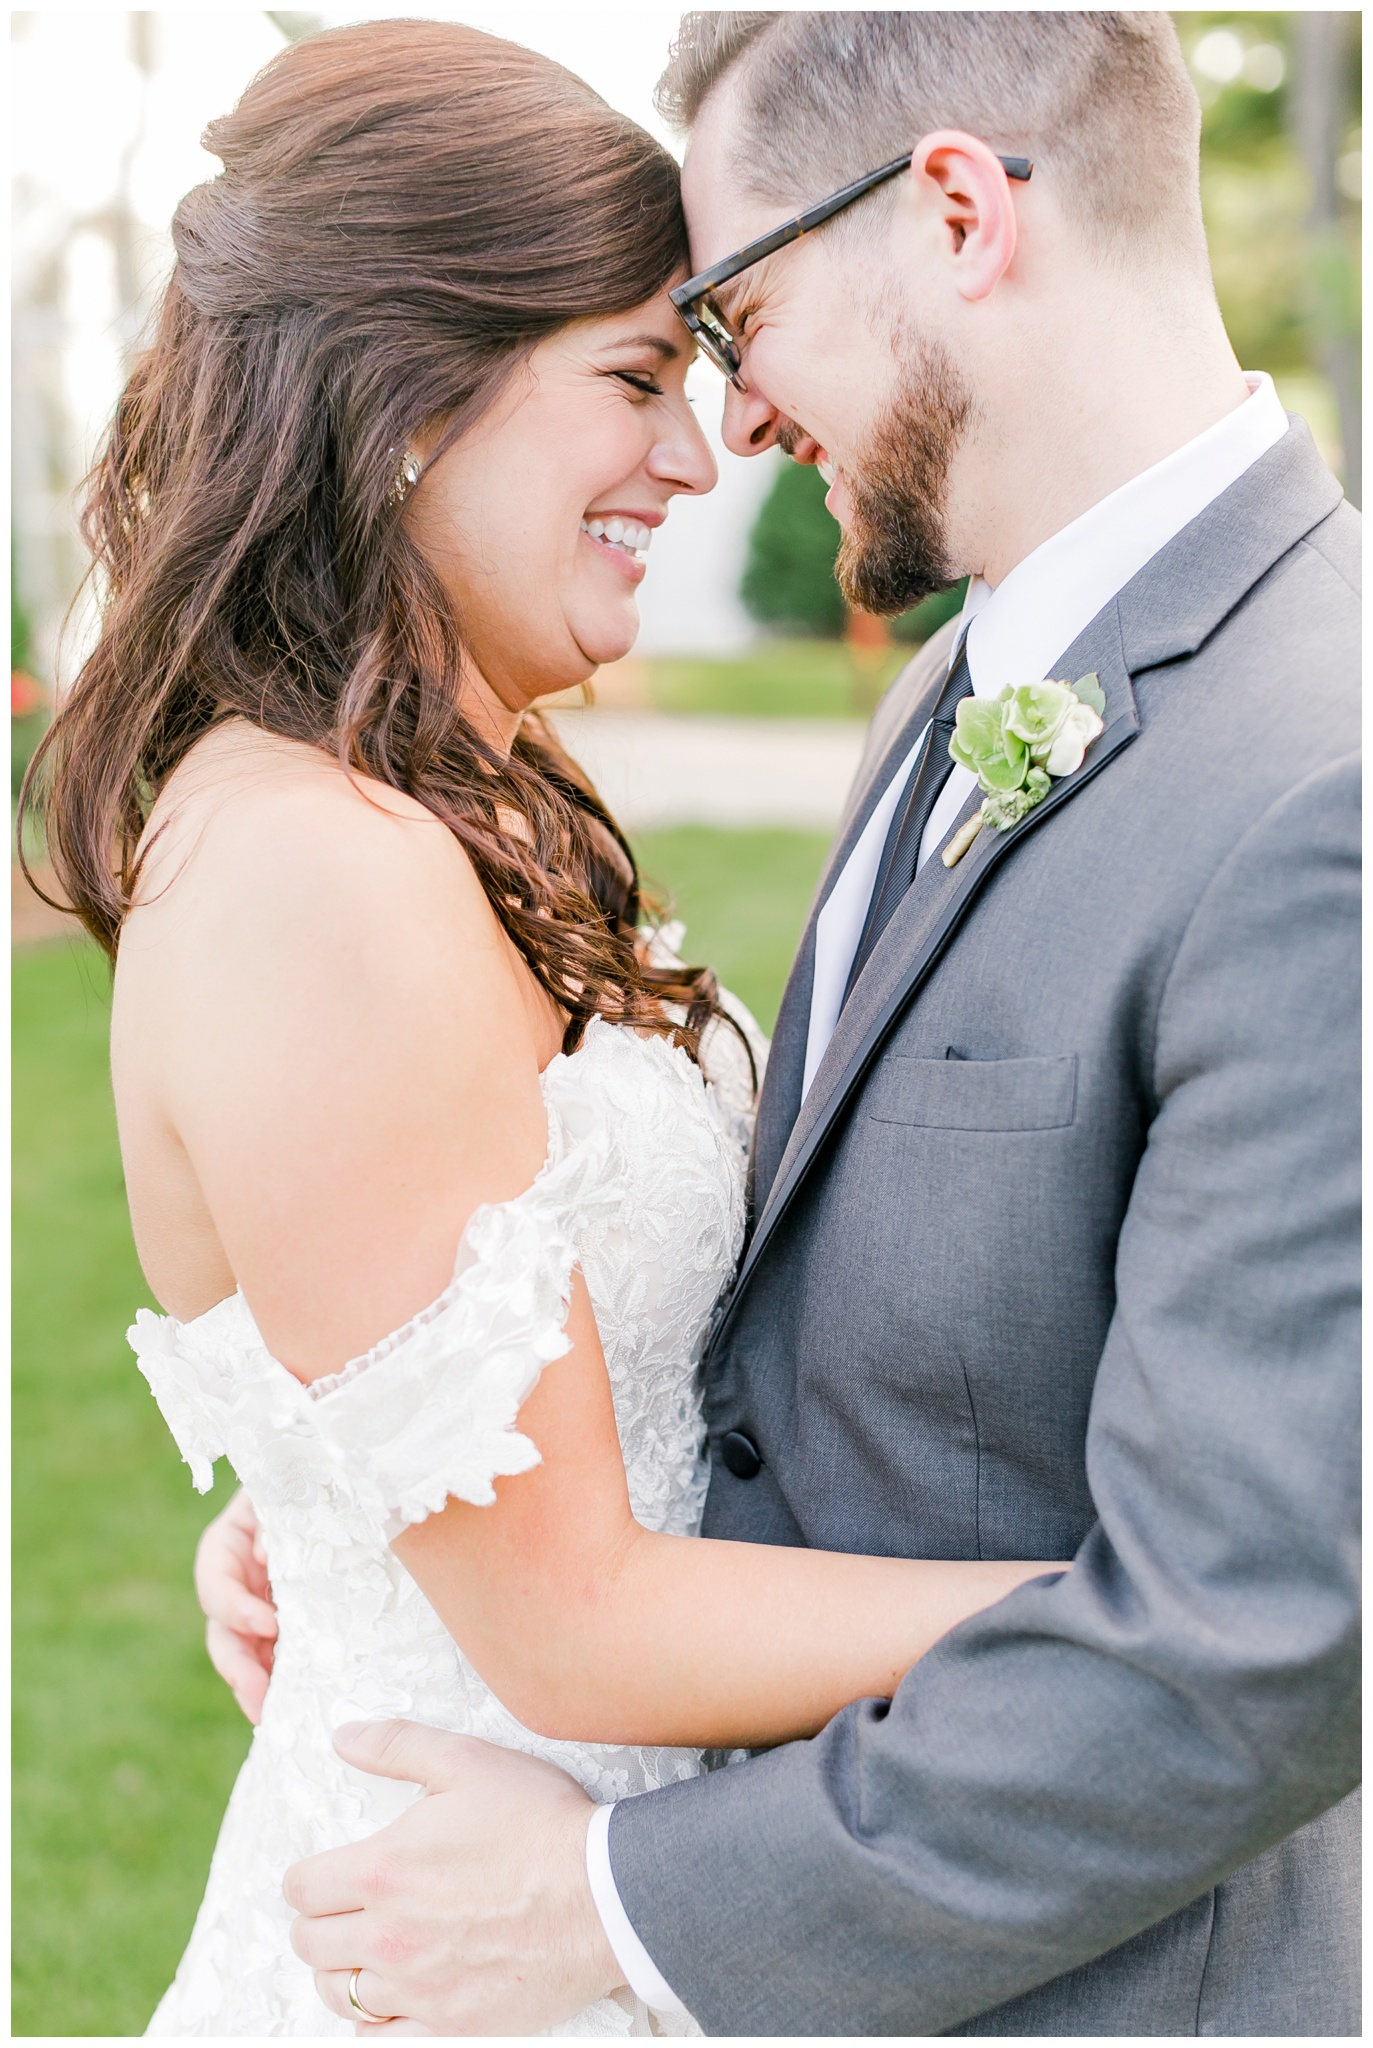 bishops_bay_country_club_wedding_middleton_wisconsin_caynay_photo_4726.jpg